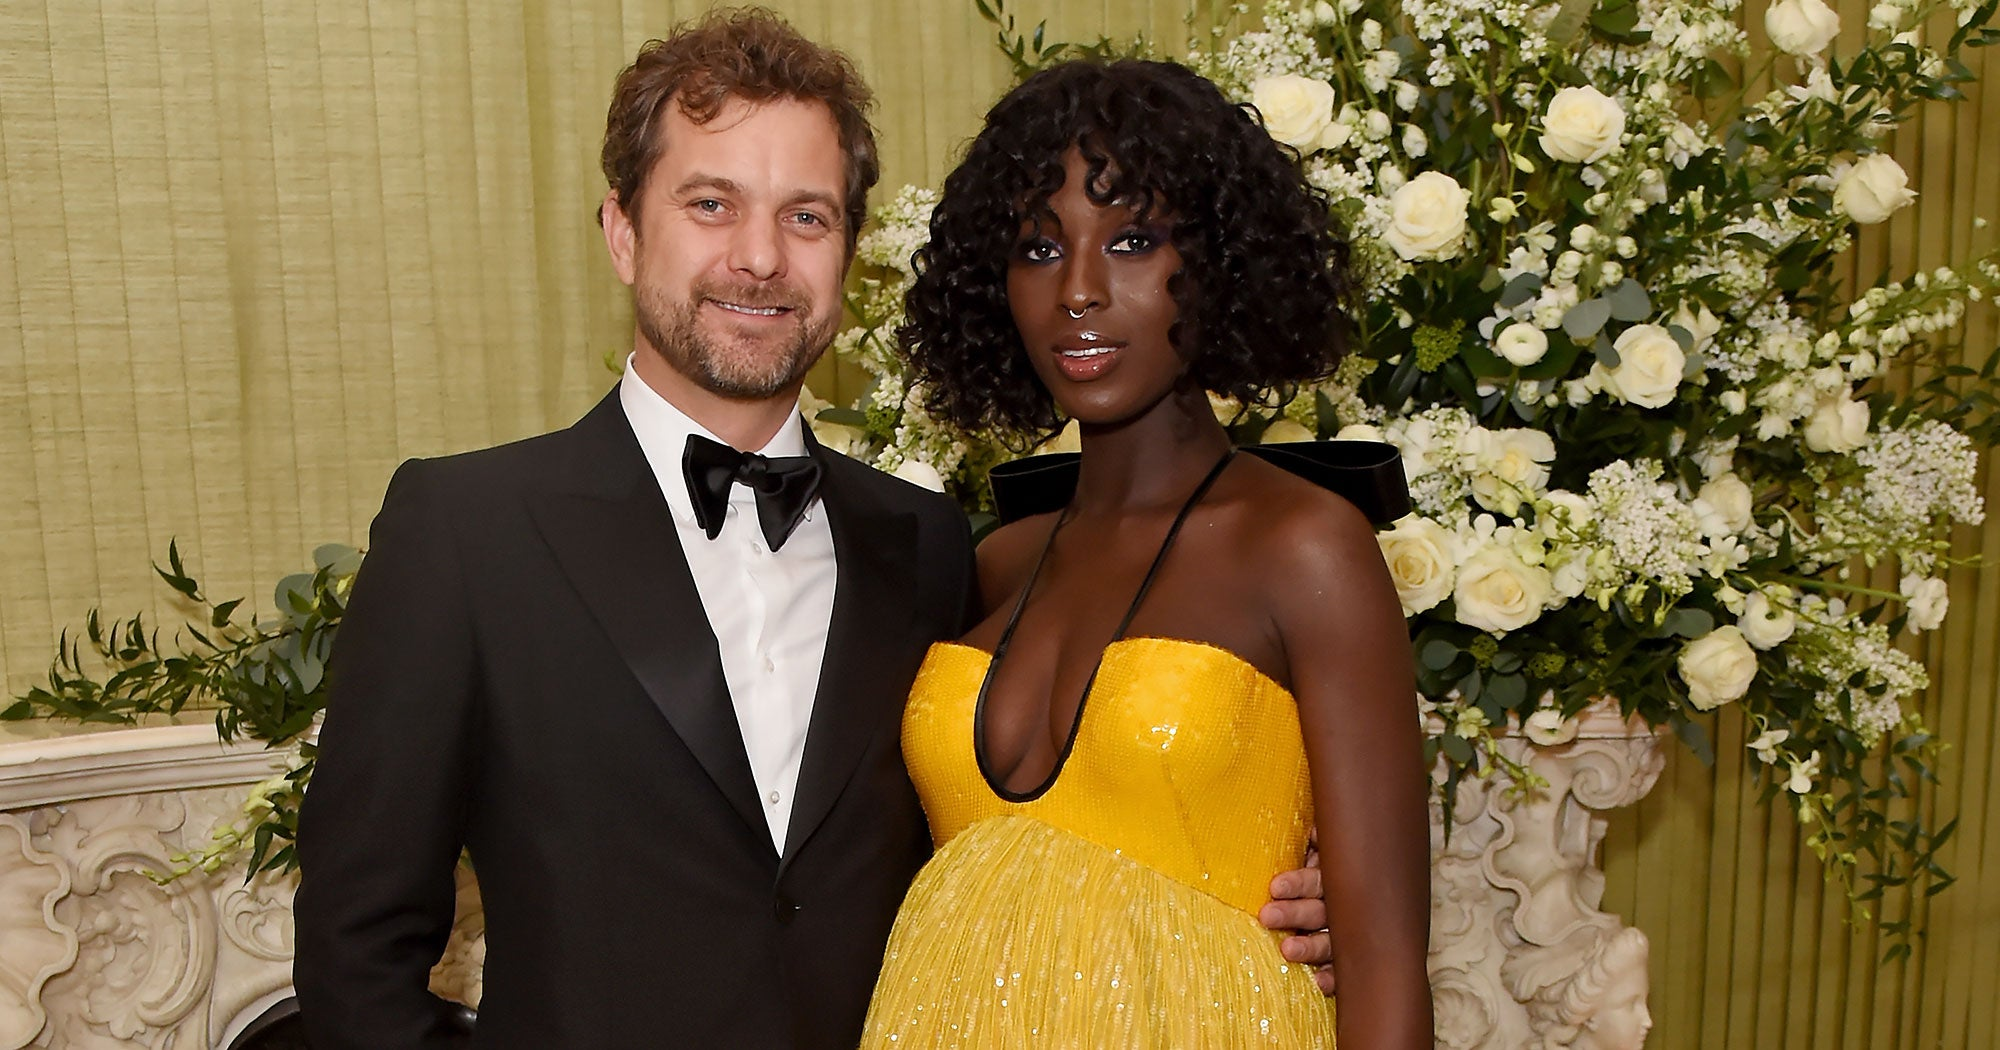 Jodie Turner-Smith Slams Paparazzi For Staking Out Her Home Spreading Rumors